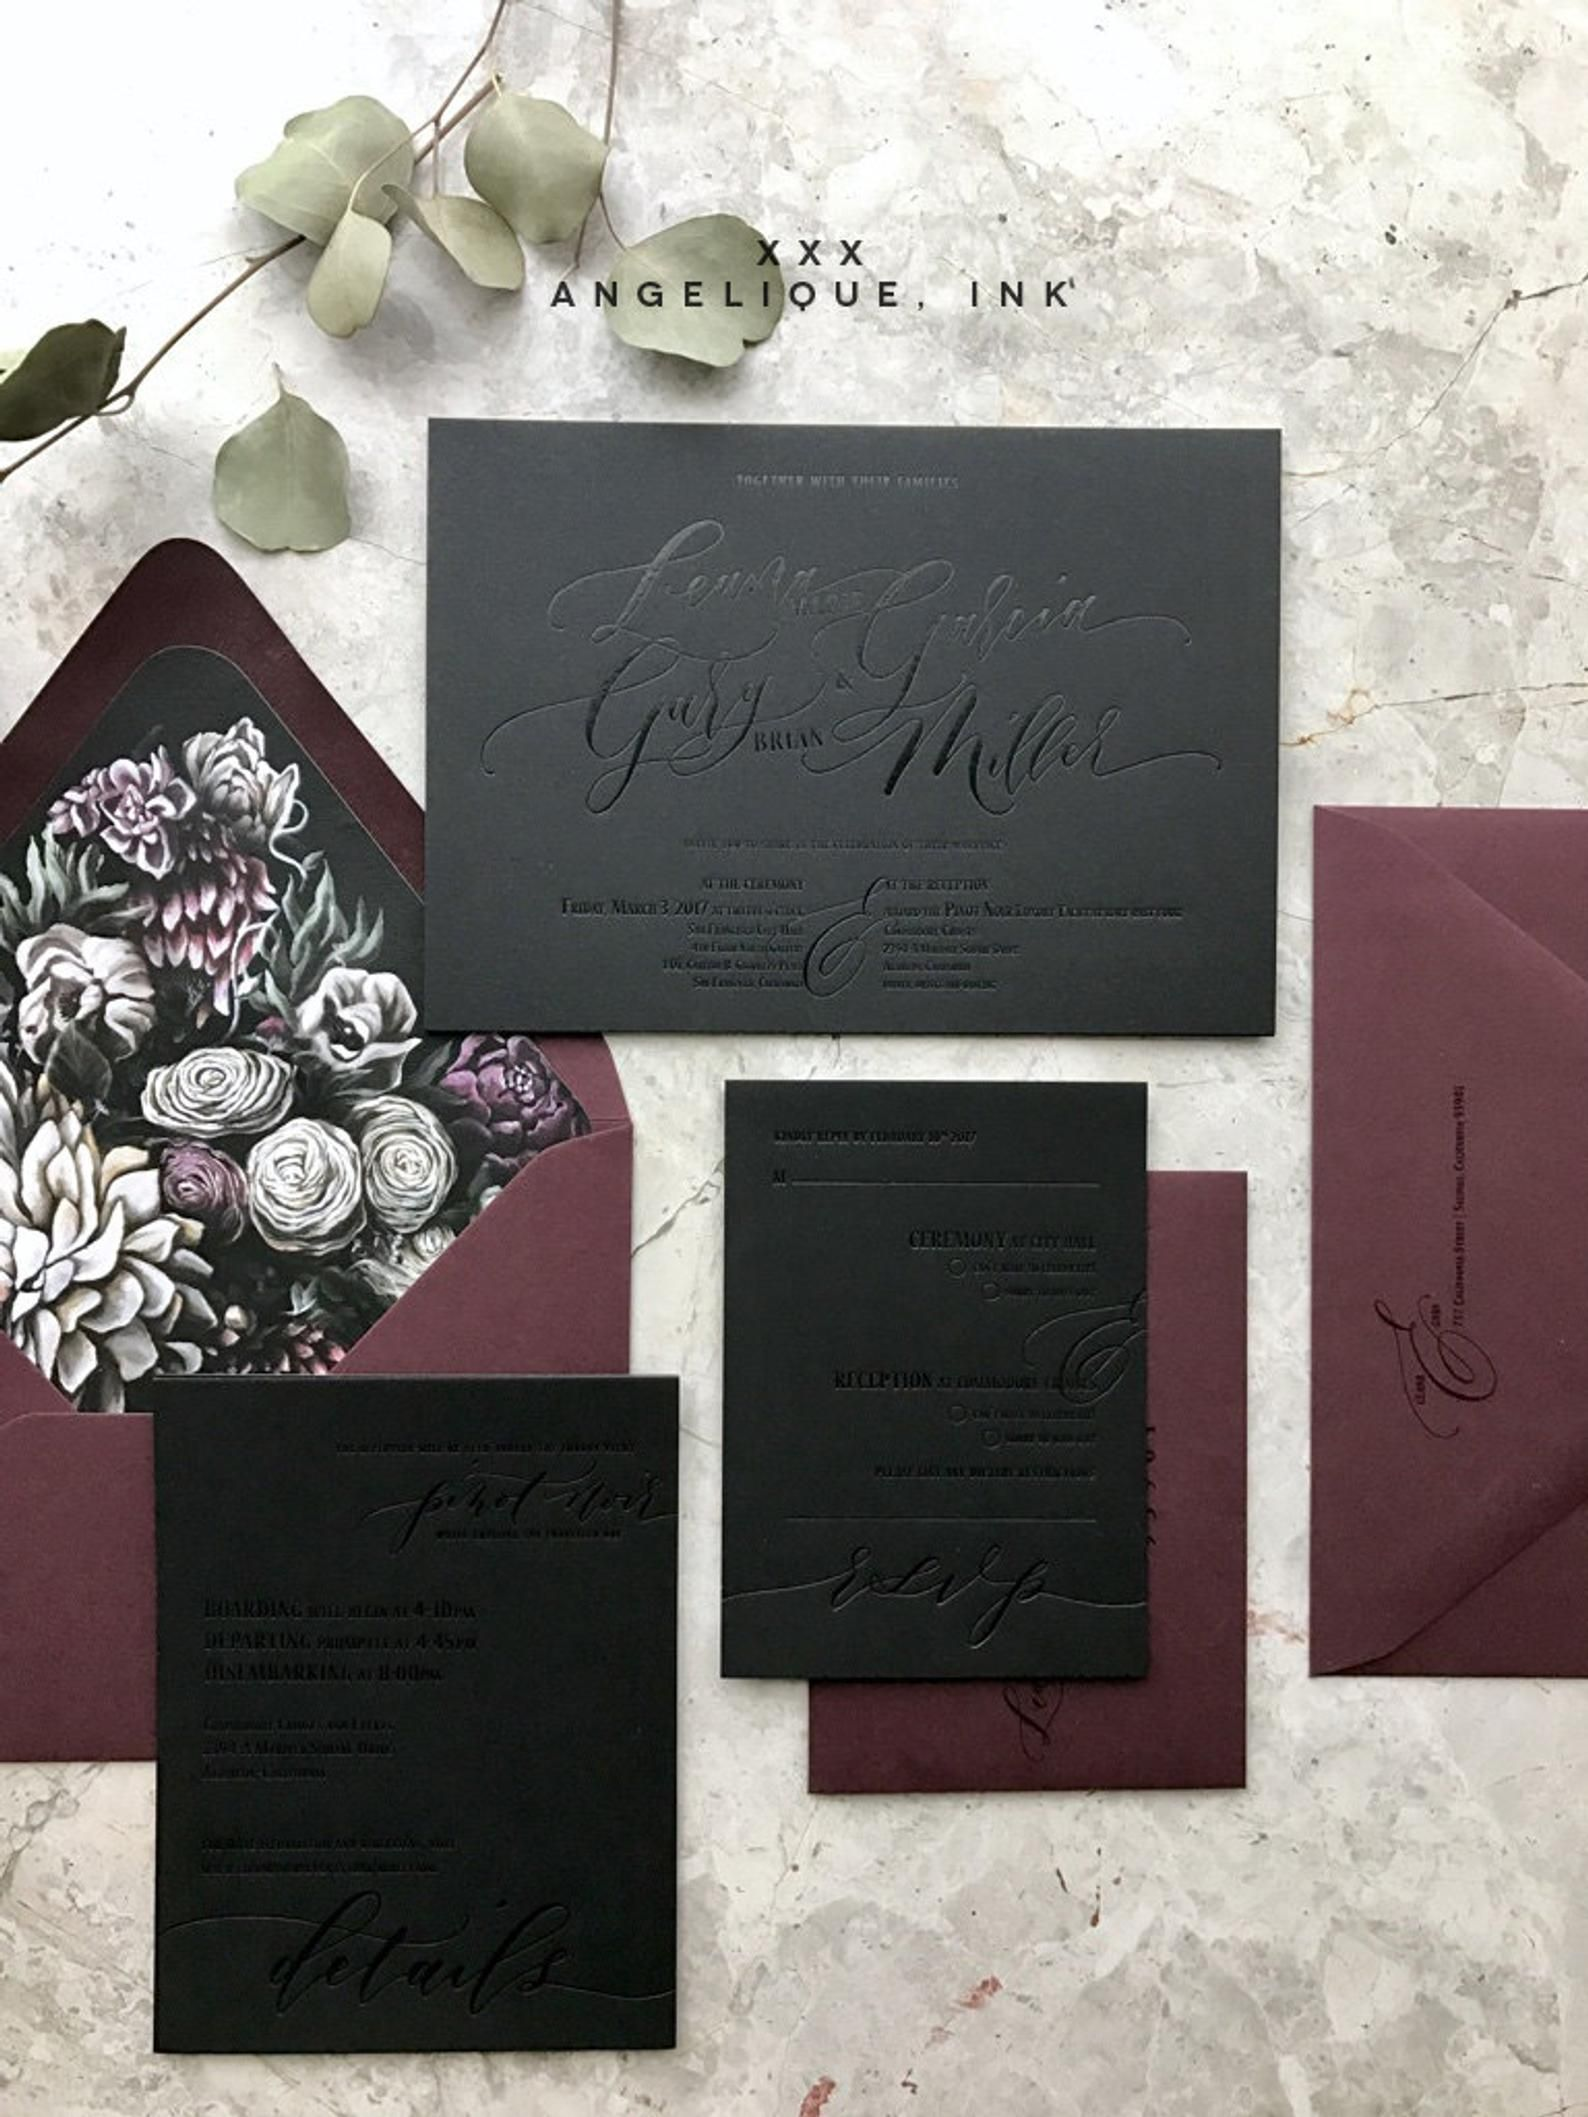 Moody Florals Calligraphy Custom Letterpress Wedding Invitations – Black on Black foil letterpress invitation – Dark Wedding Invitation